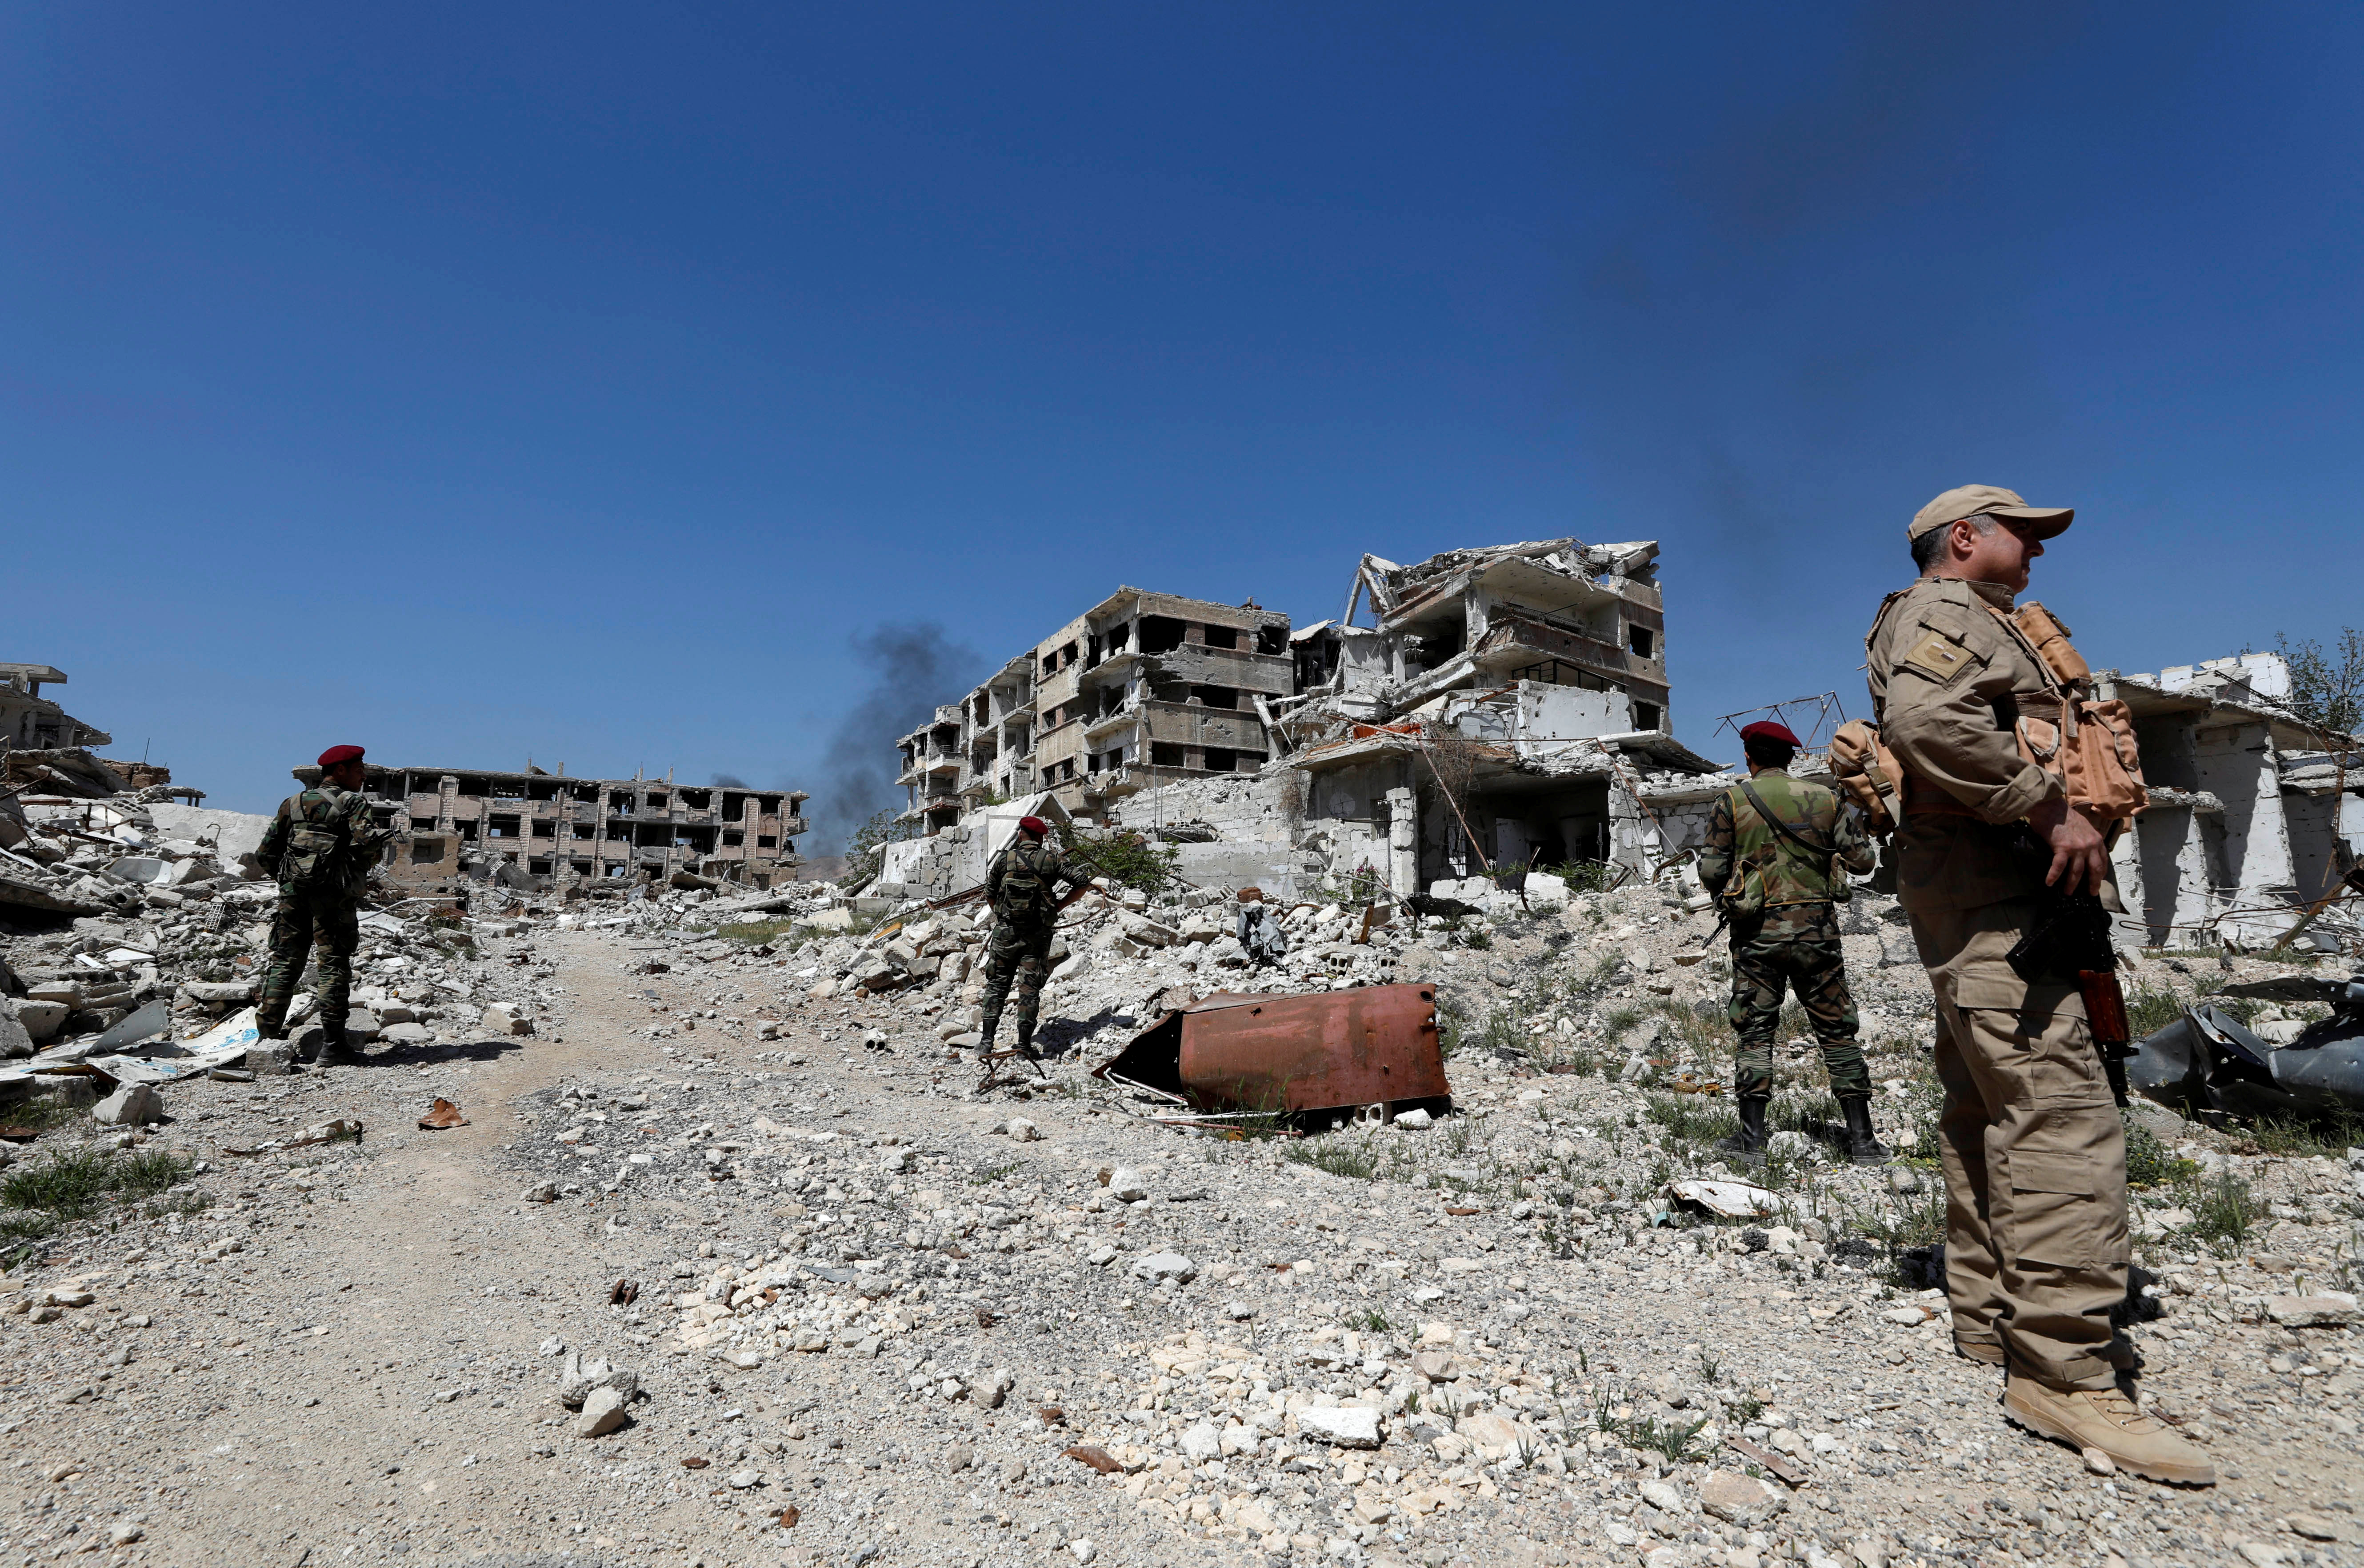 Members of Syrian forces of President Bashar al Assad stand guard near destroyed buildings in Jobar, eastern Ghouta, in Damascus, Syria April 2, 2018. REUTERS/Omar Sanadiki - RC1C4E863200